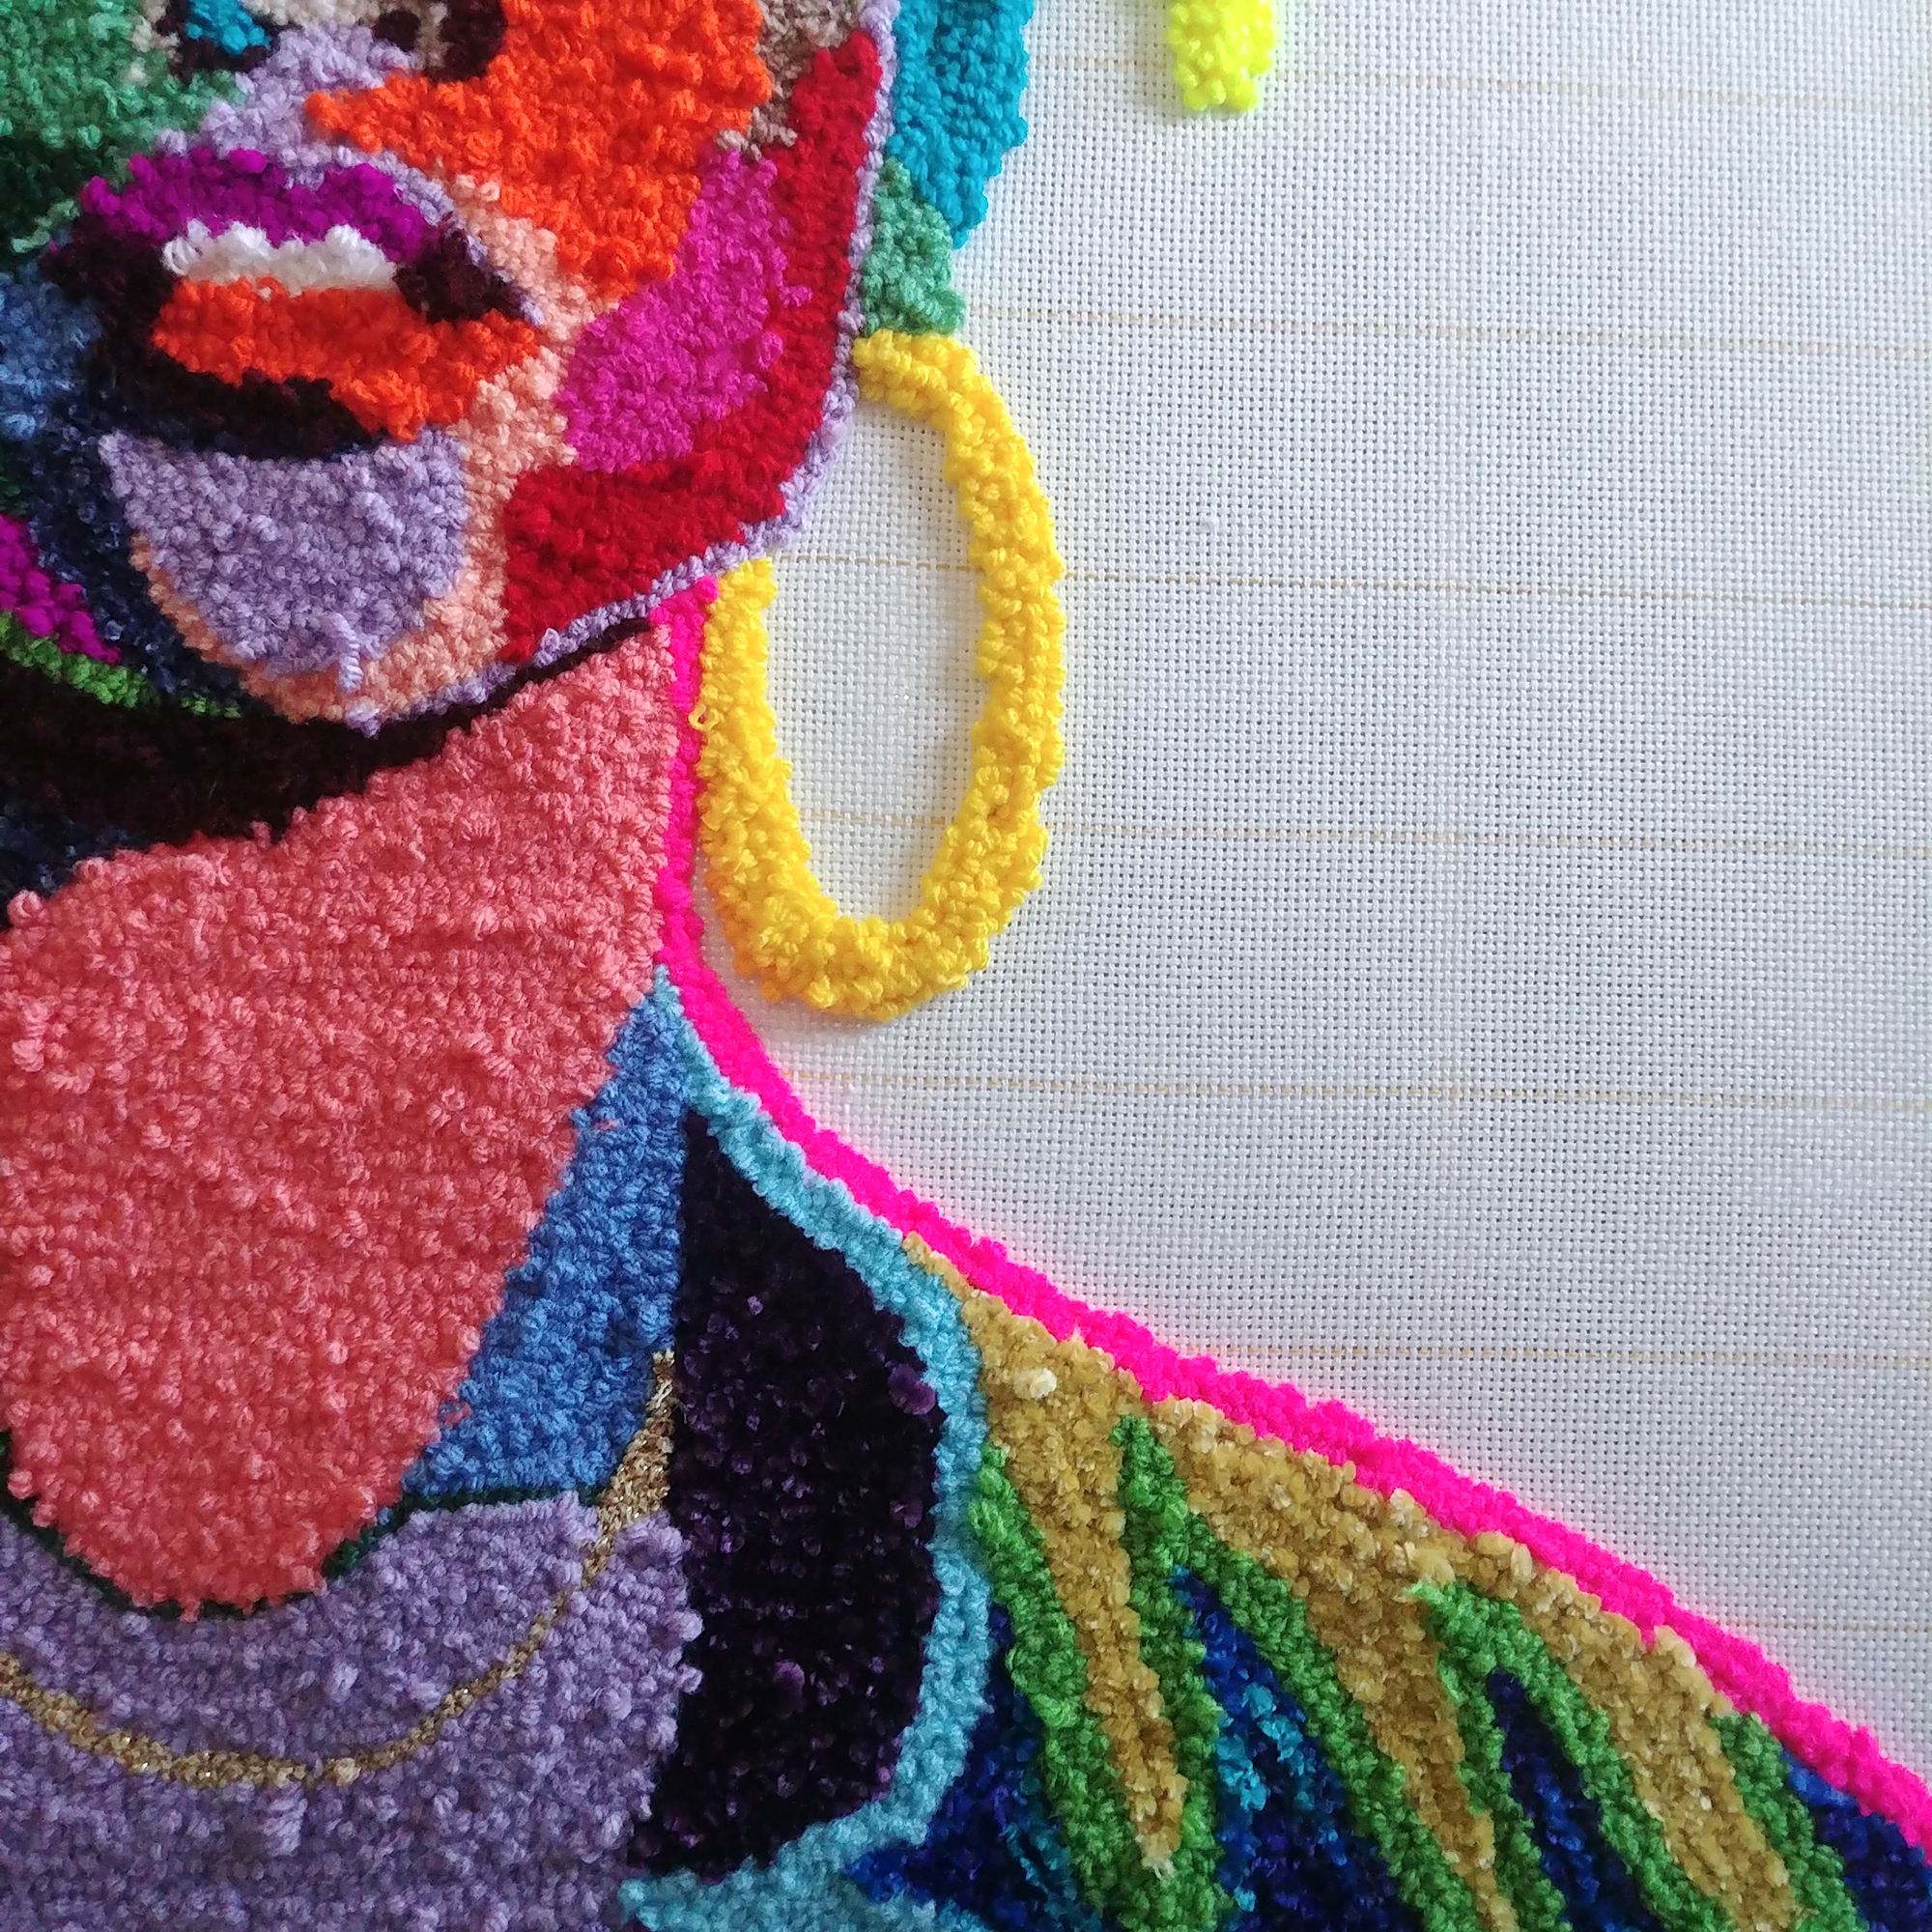 Hand-Tufted Patches of Color Form Lush Fiber Portraits by Artist Simone Saunders